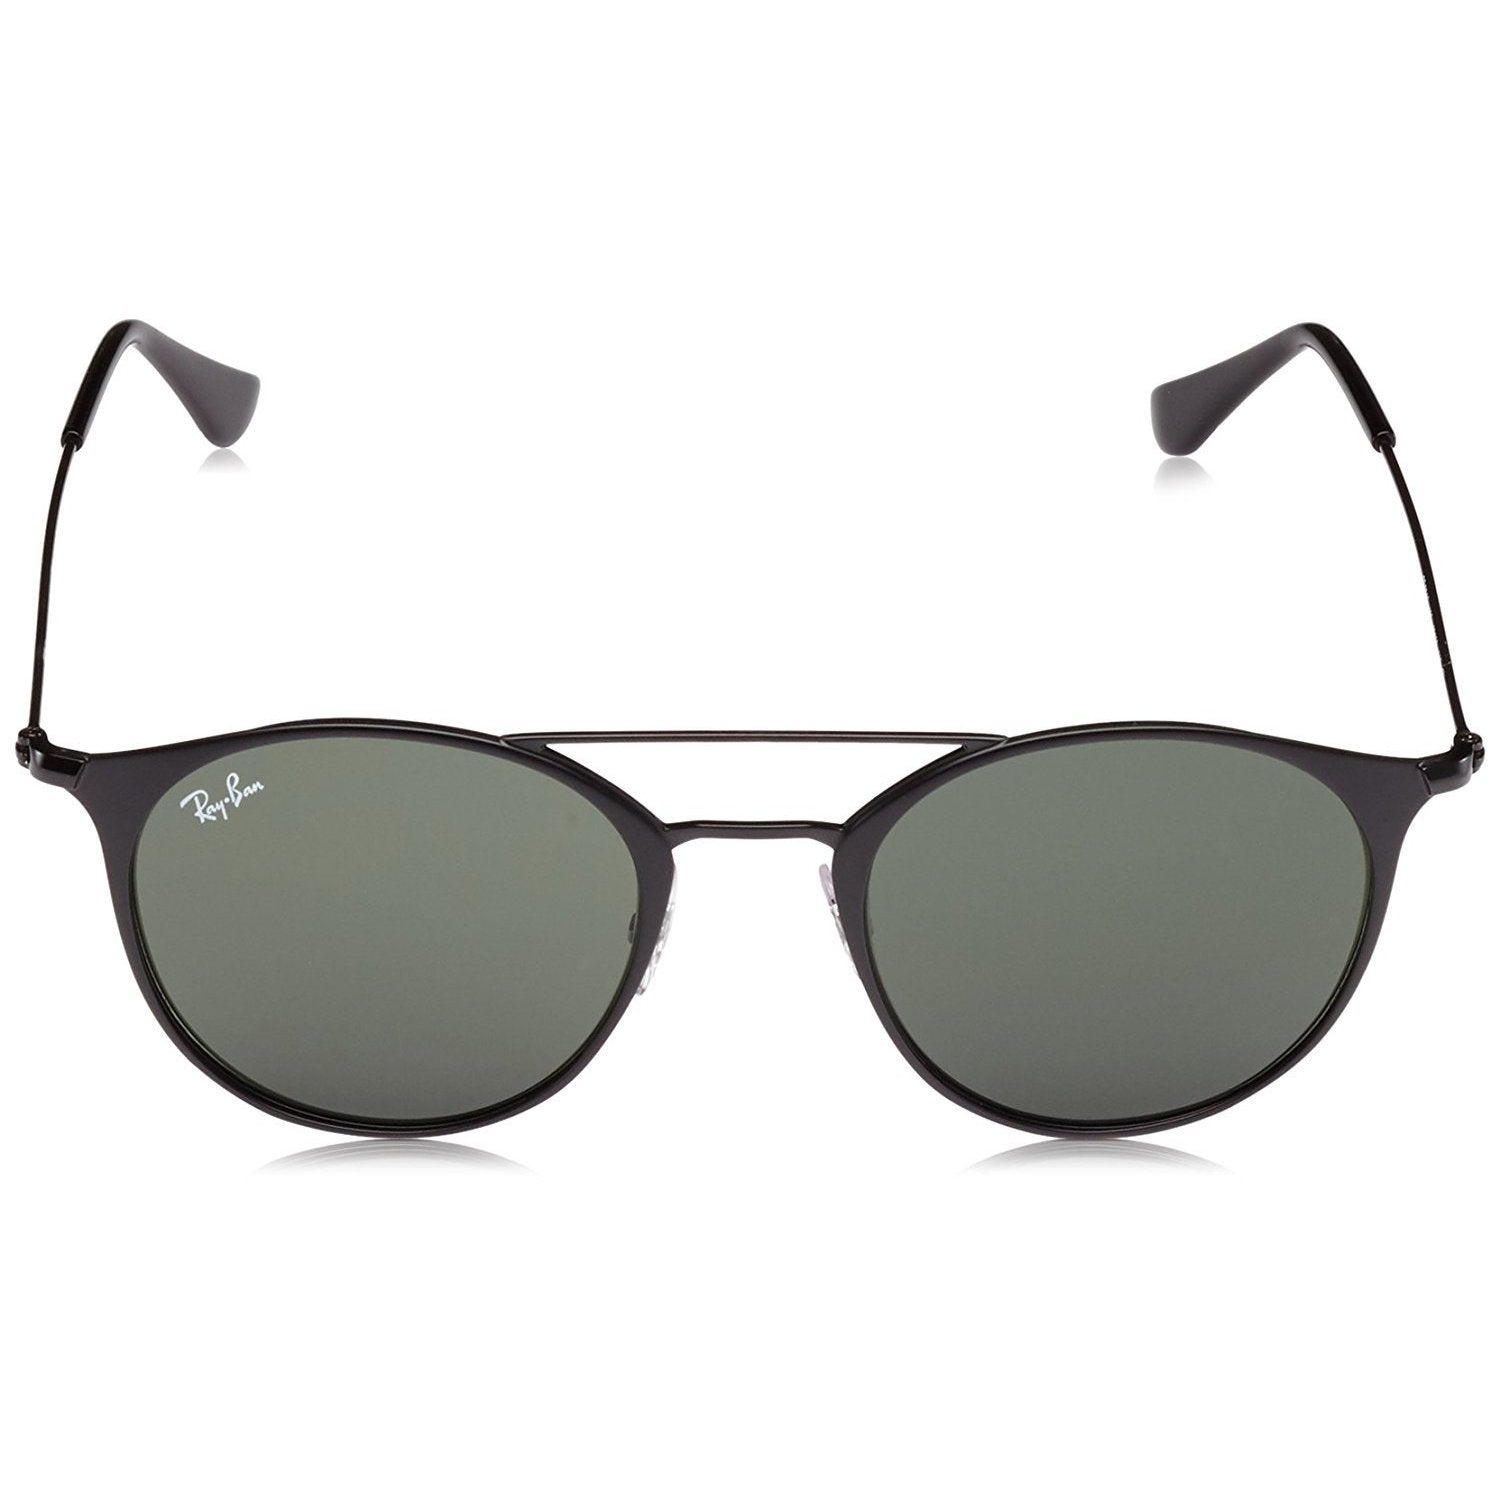 f9f4774653fa6 Shop Ray-Ban Unisex RB3546 186 Black Frame Green Classic G-15 52 mm Lens  Sunglasses - Free Shipping Today - Overstock - 16740876